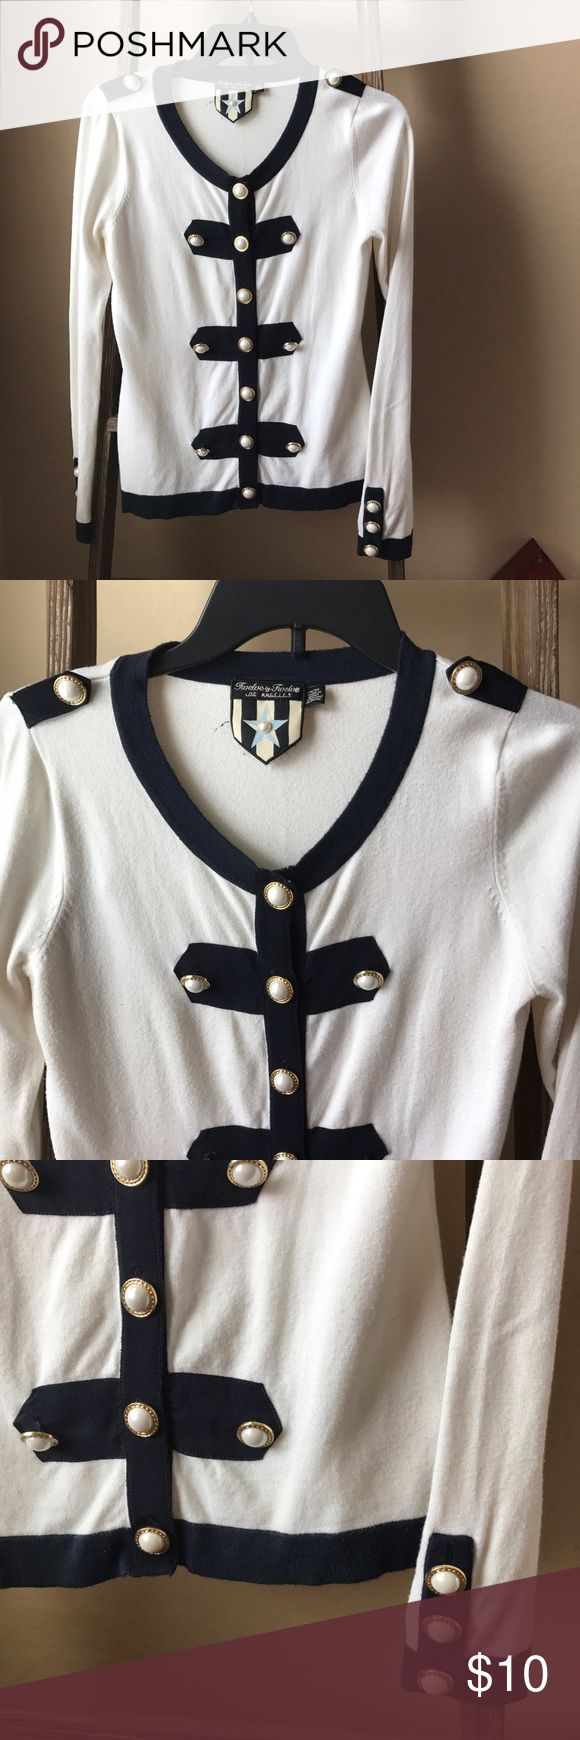 Nautical cardigan with pearl button details Nautical cardigan in white with navy trim, and the cutest pearl button details! Brand is Twelve by Twelve from Forever 21. Size Medium. Worn, loved, and taken care of! Forever 21 Sweaters Cardigans